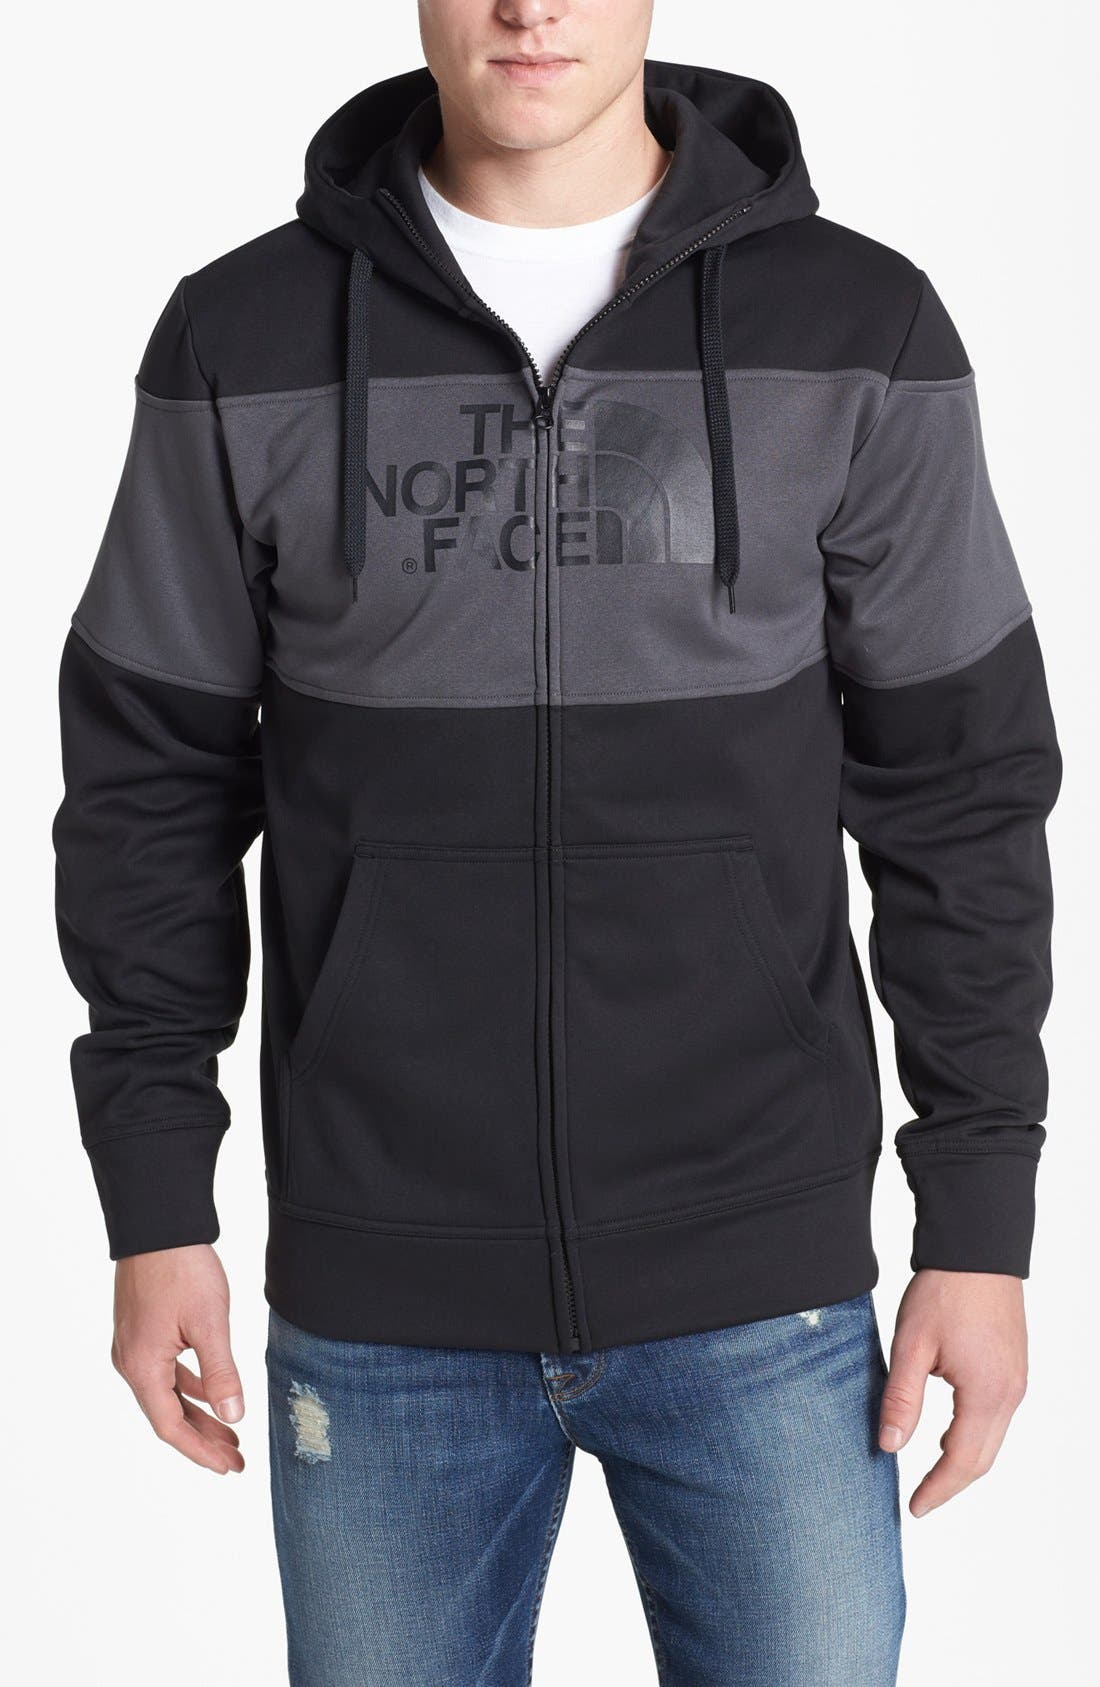 Alternate Image 1 Selected - The North Face 'Peak Dome' Zip Hoodie